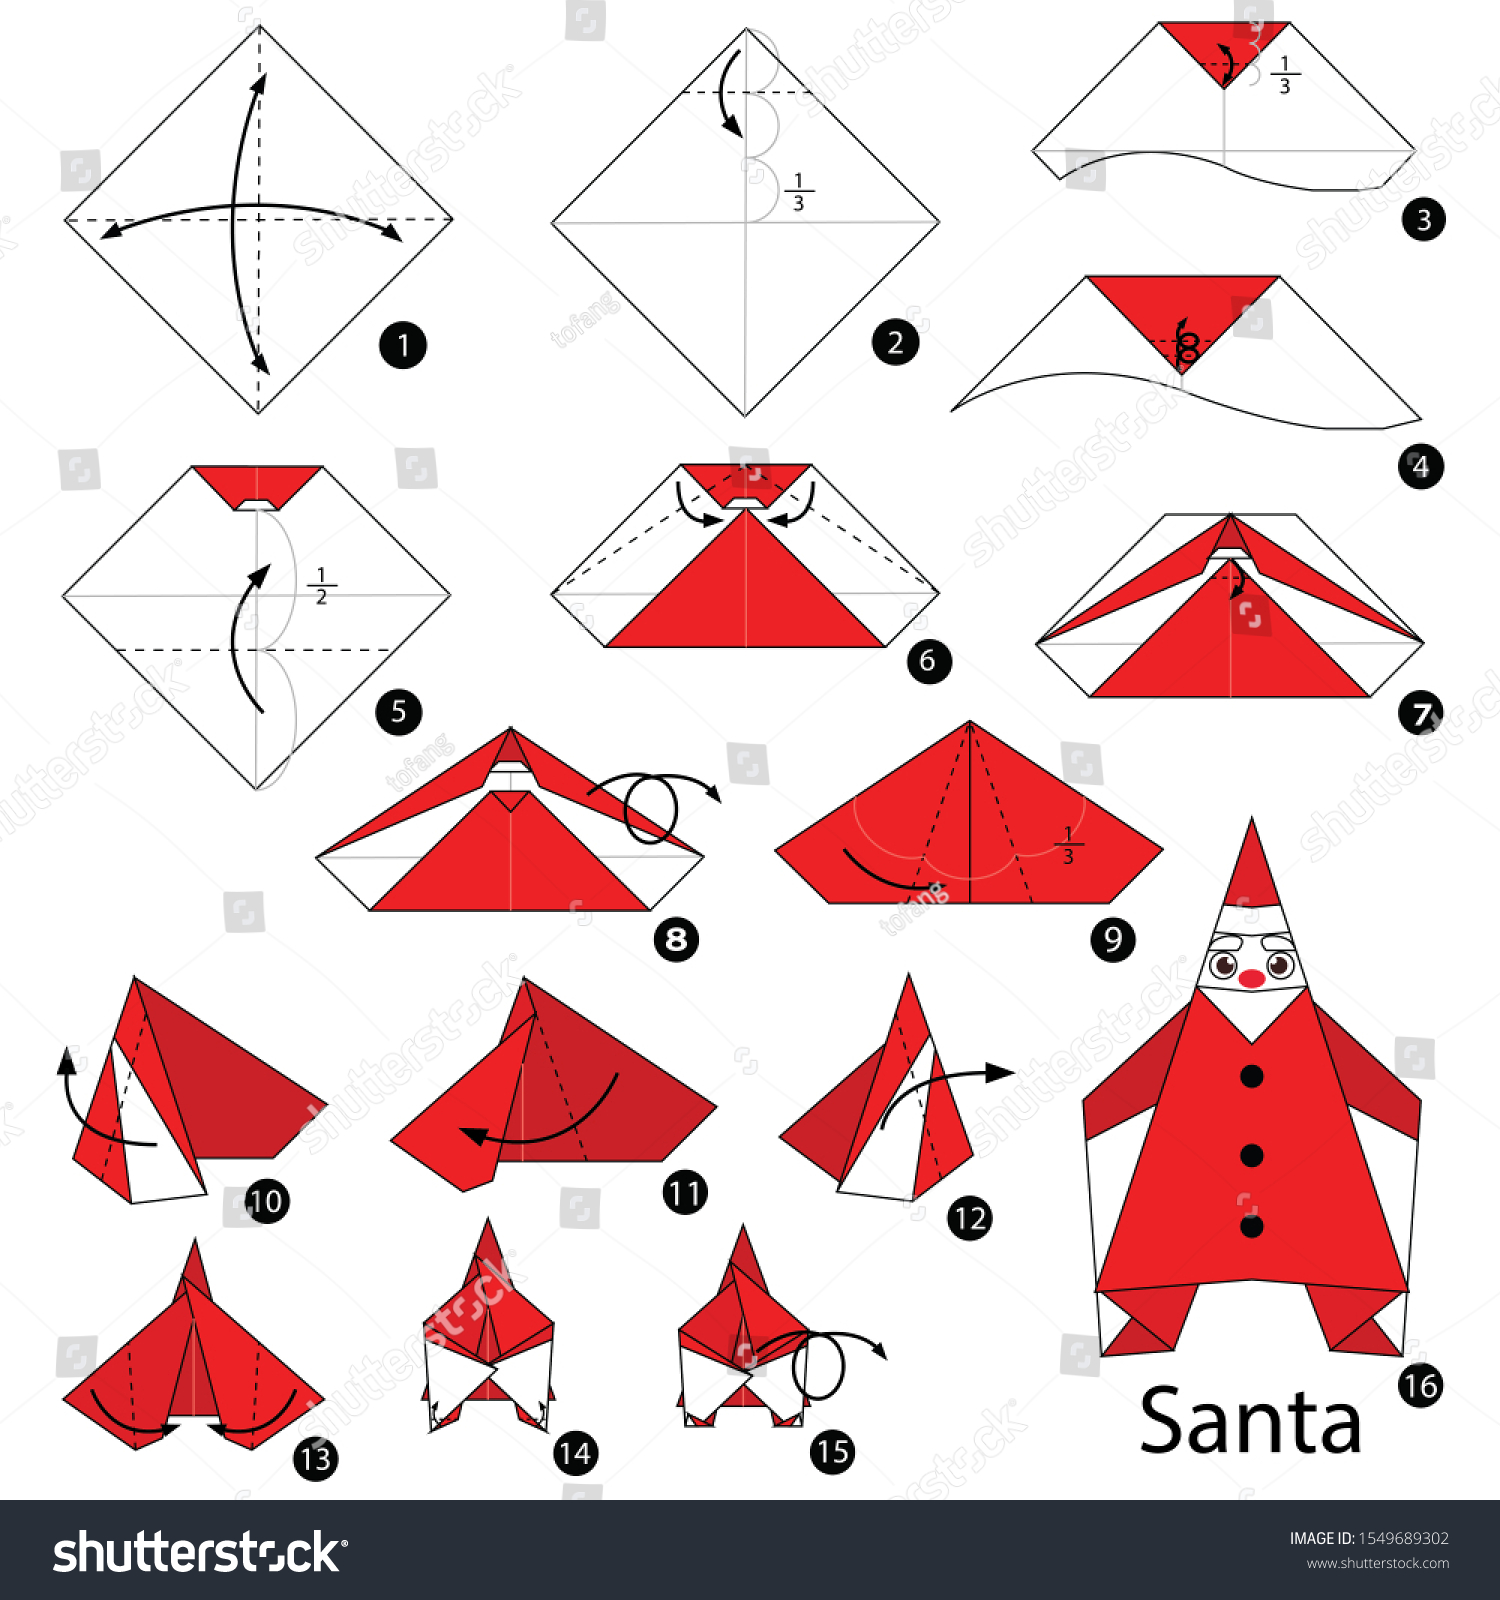 How to Make an Origami Santa Boots Instructions | Free Printable ... | 1600x1500